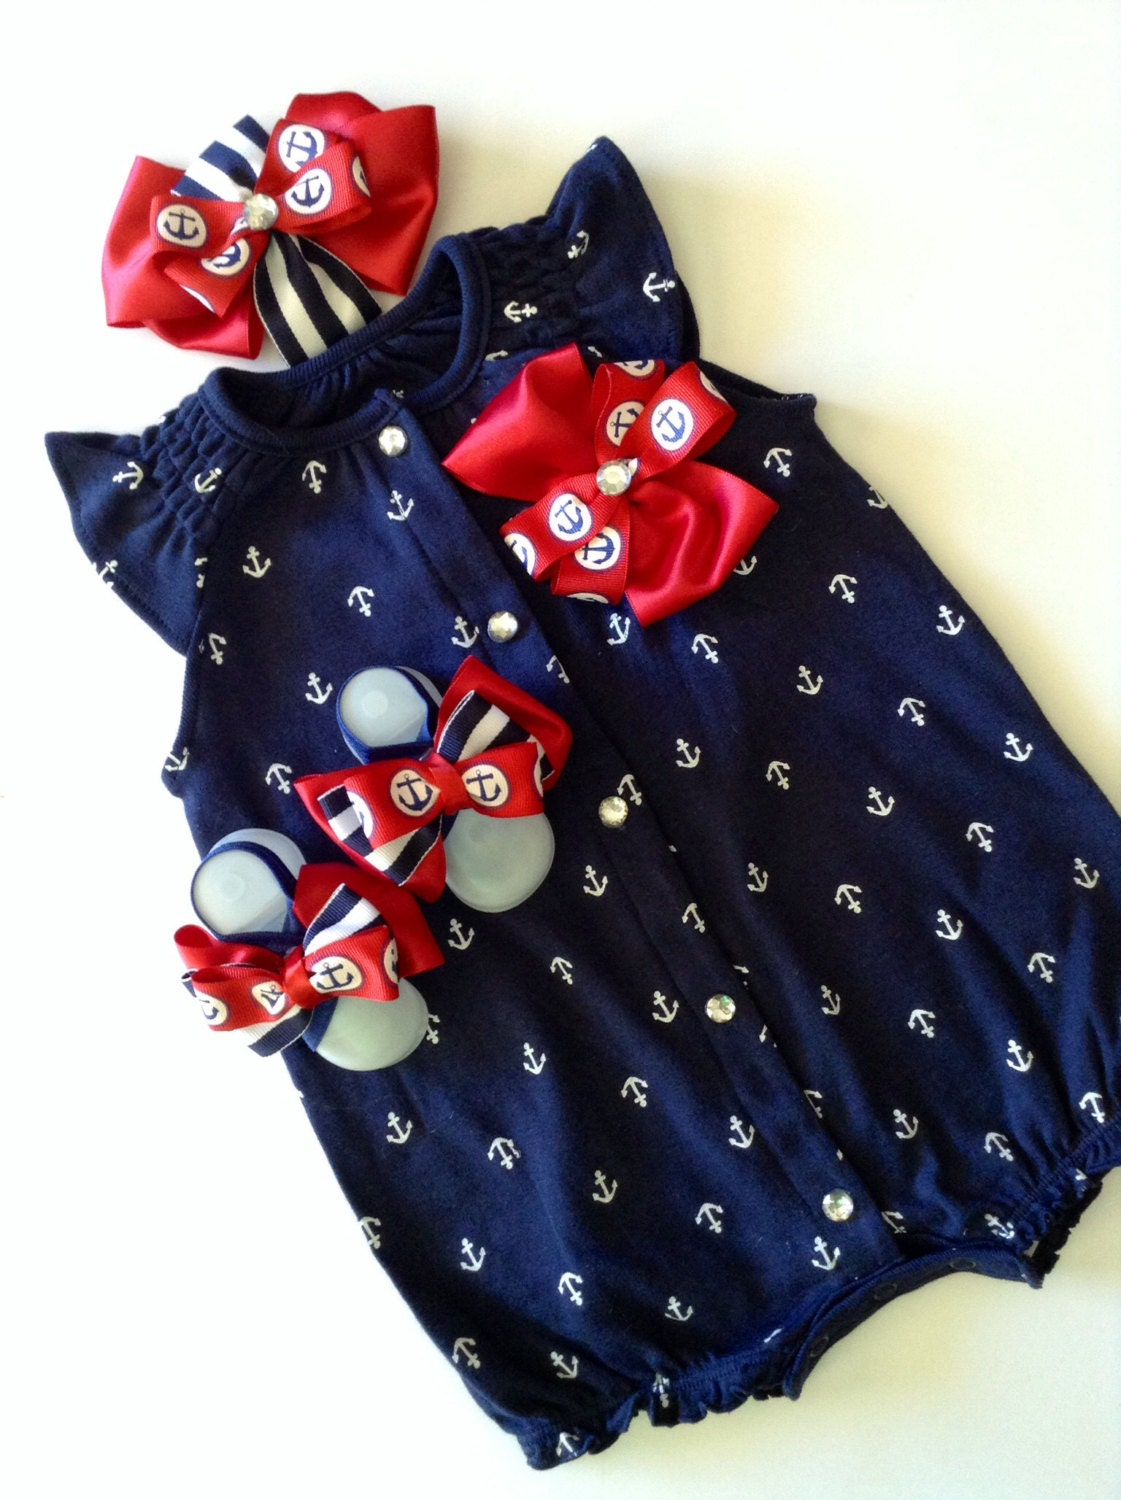 You searched for: baby girl 4th of july outfits! Etsy is the home to thousands of handmade, vintage, and one-of-a-kind products and gifts related to your search. No matter what you're looking for or where you are in the world, our global marketplace of sellers can help you find unique and affordable options. Let's get started!